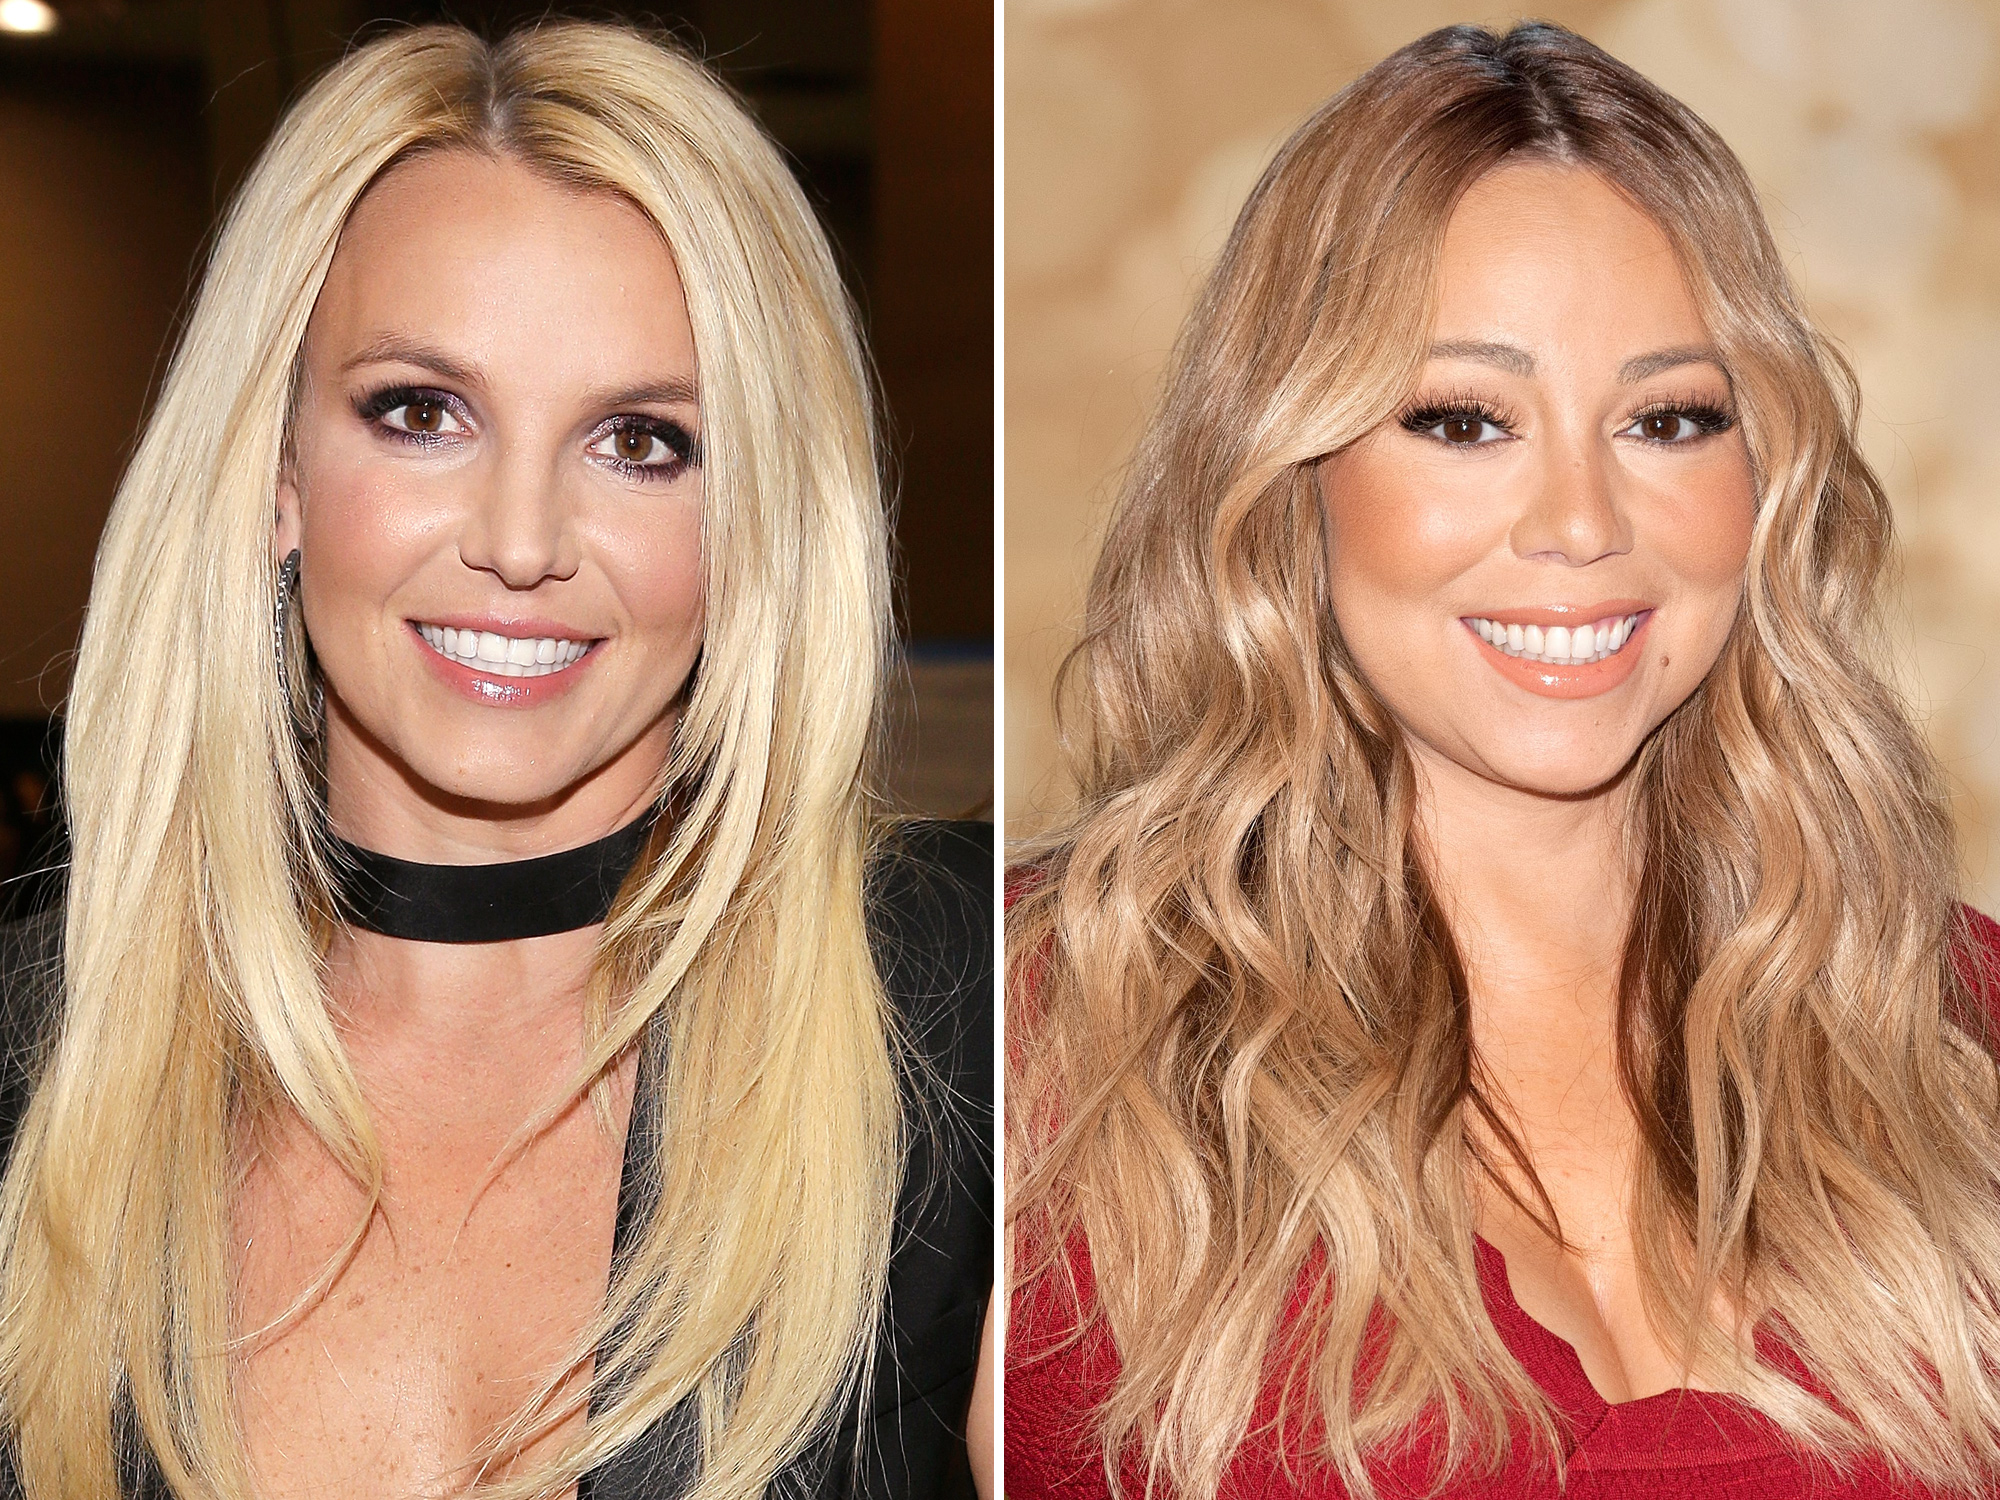 Britney Spears And Mariah Carey Met And Nearly Broke The Internet